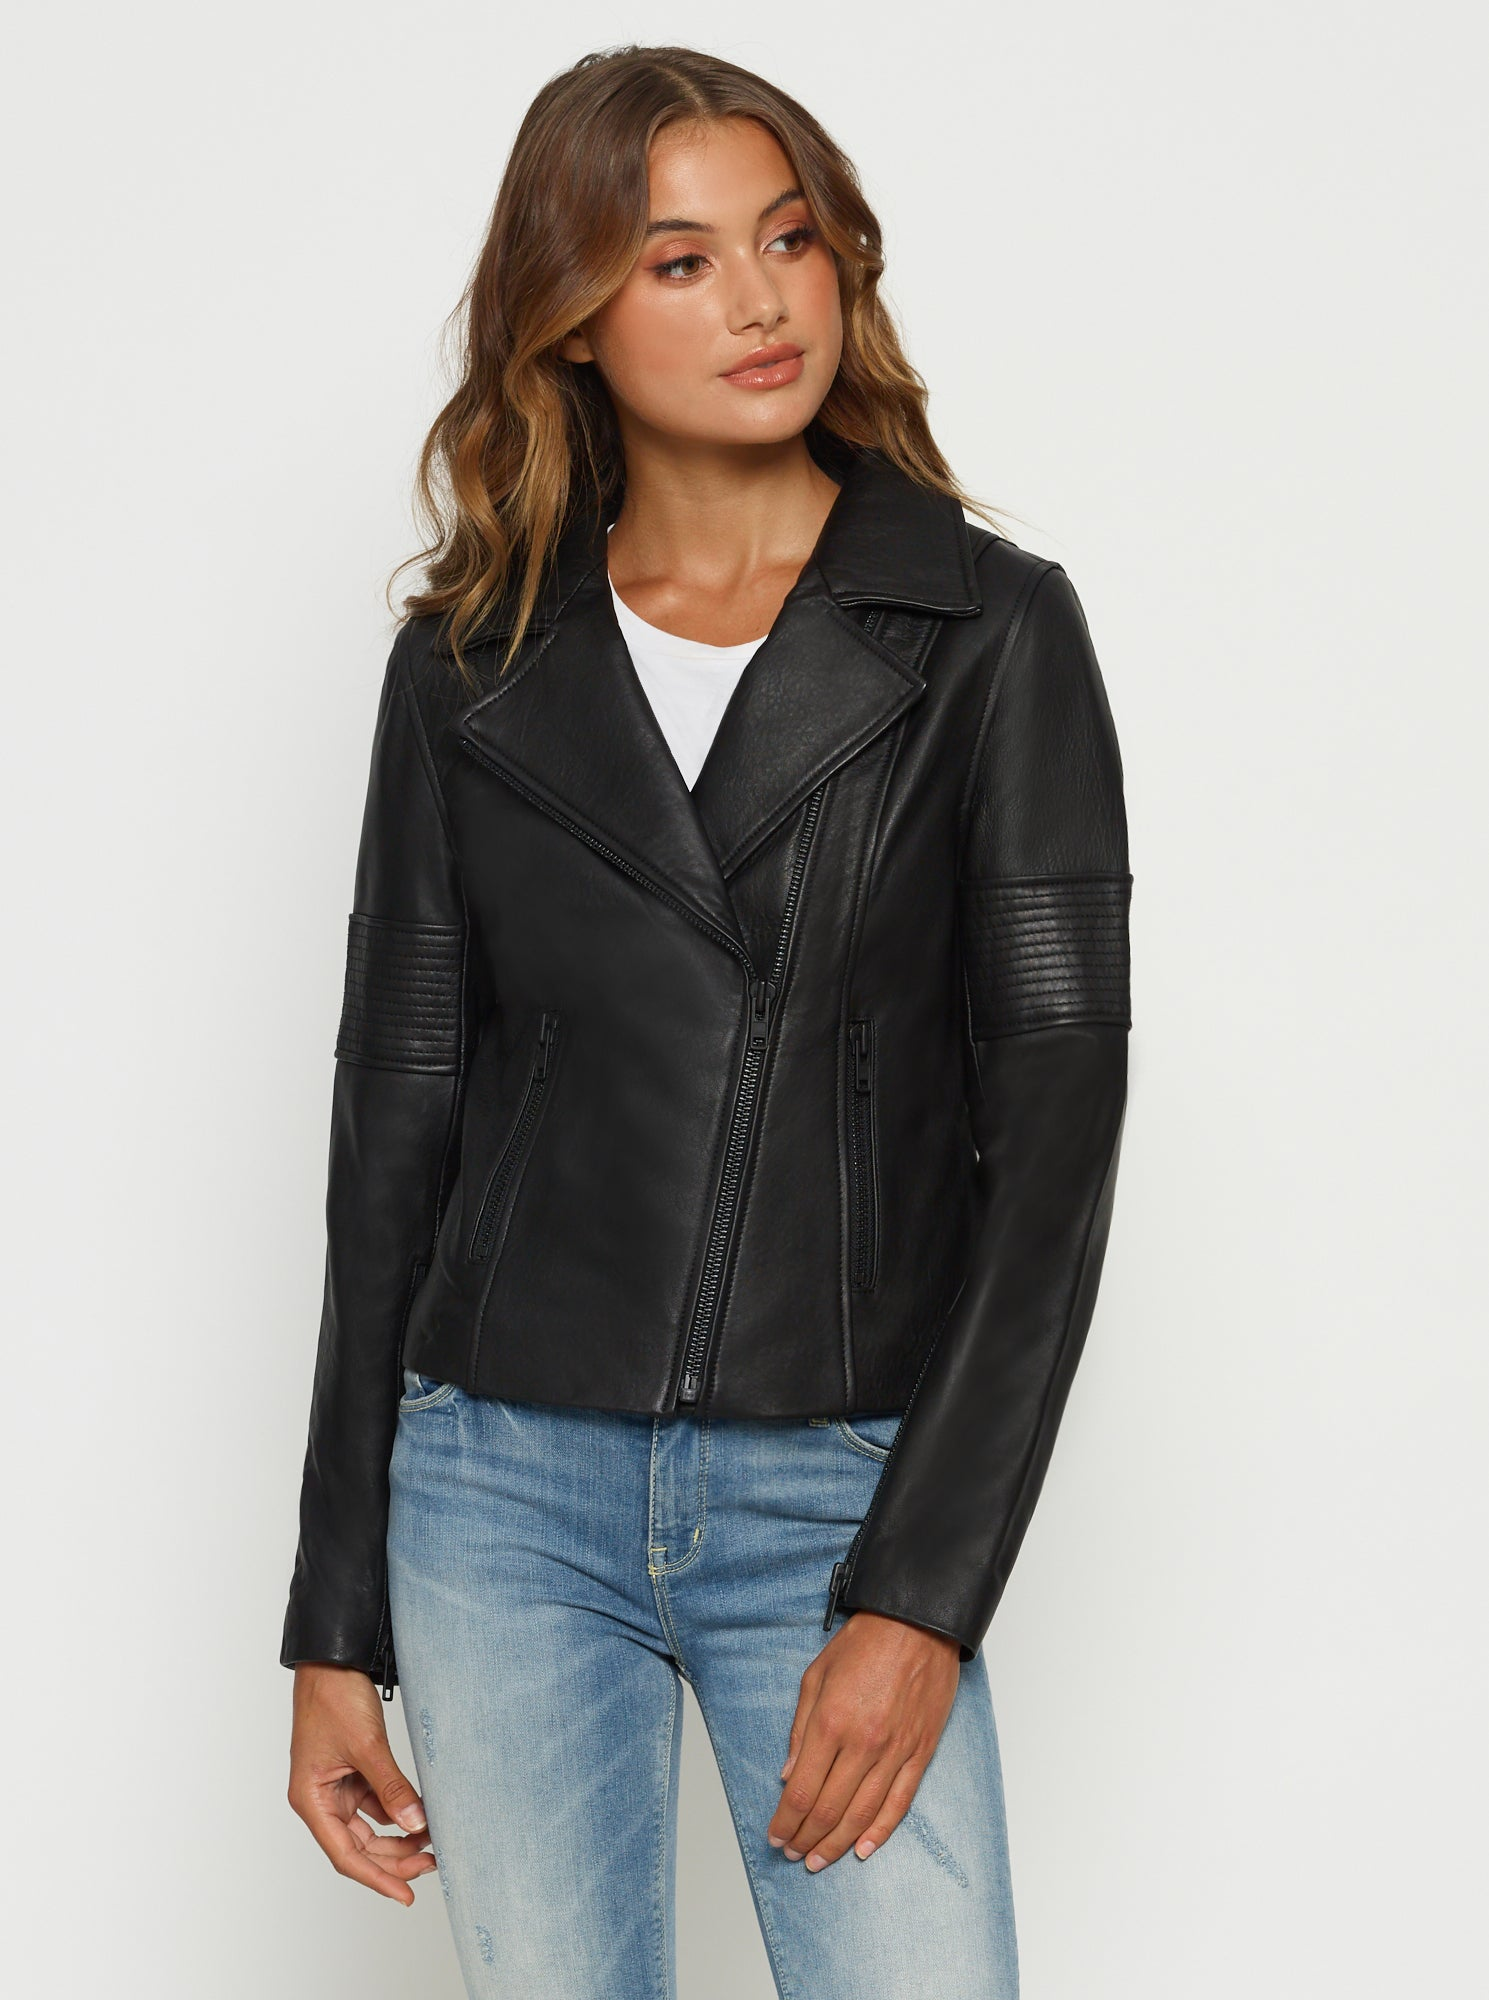 Born To Be Wild Leather Jacket